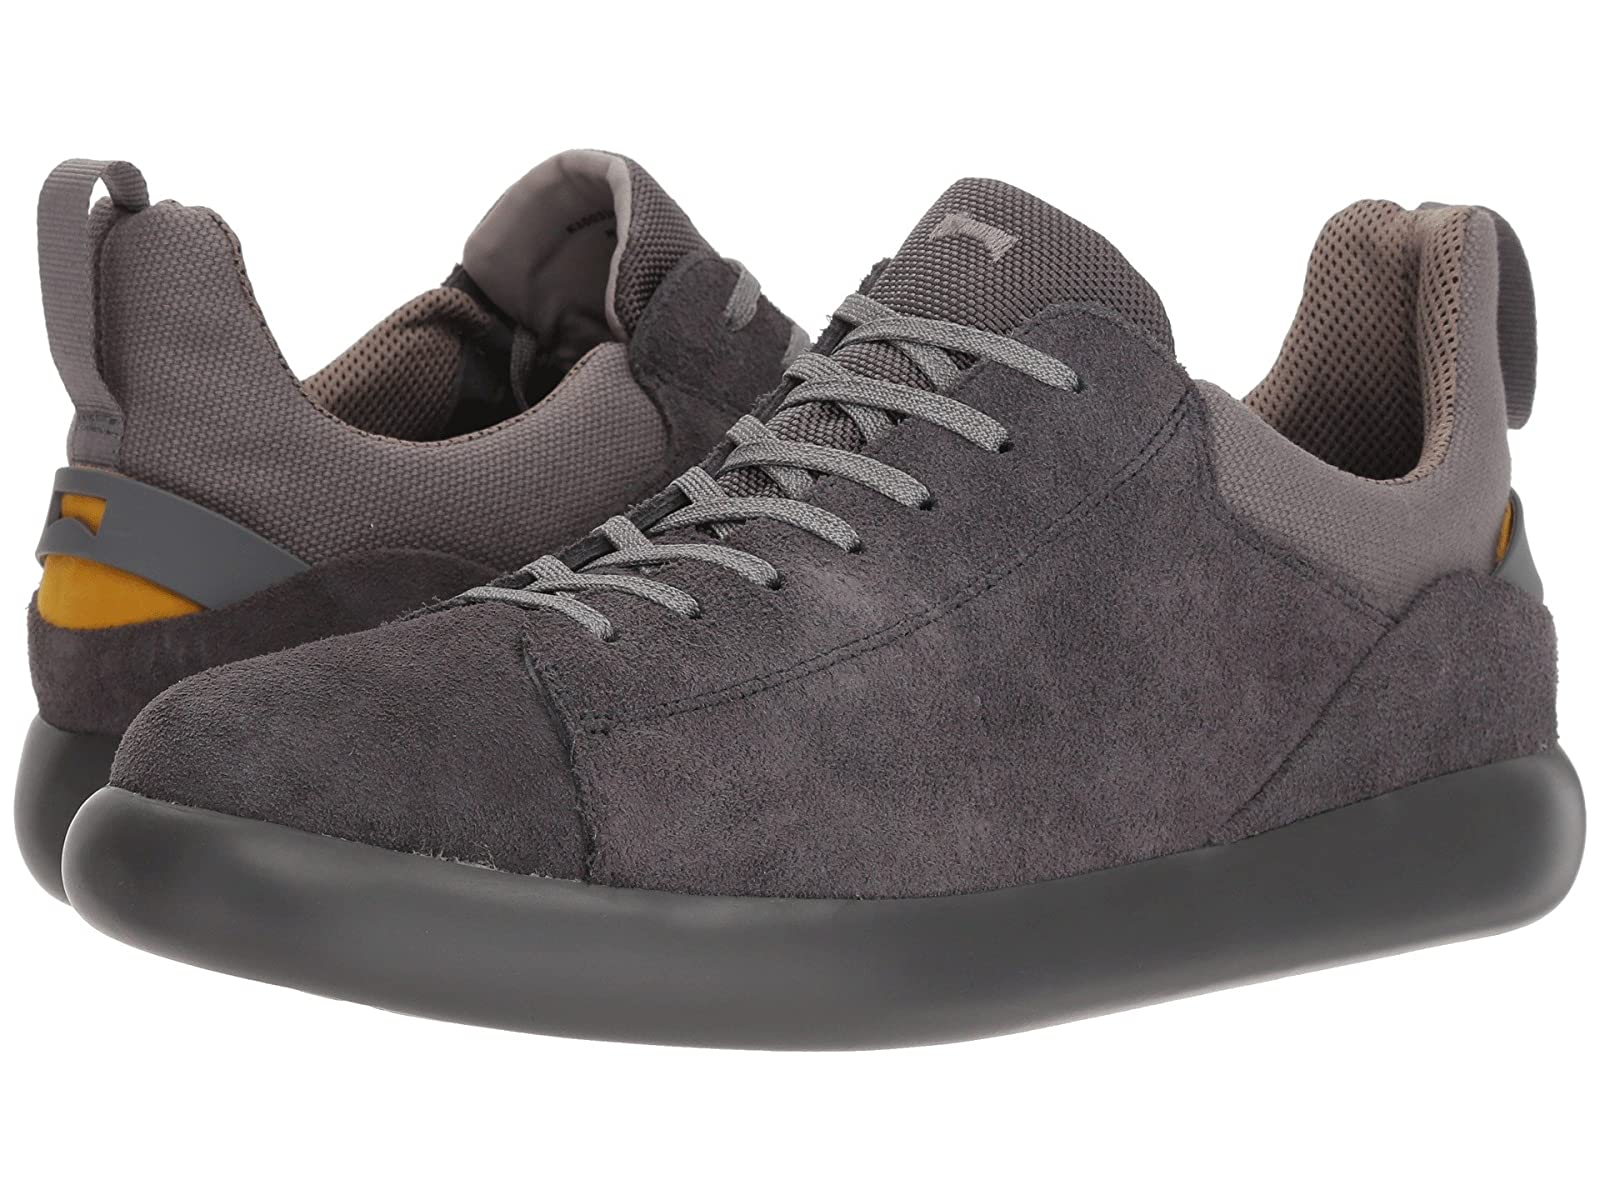 Camper Pelotas Capsule XL - K100319Atmospheric grades have affordable shoes